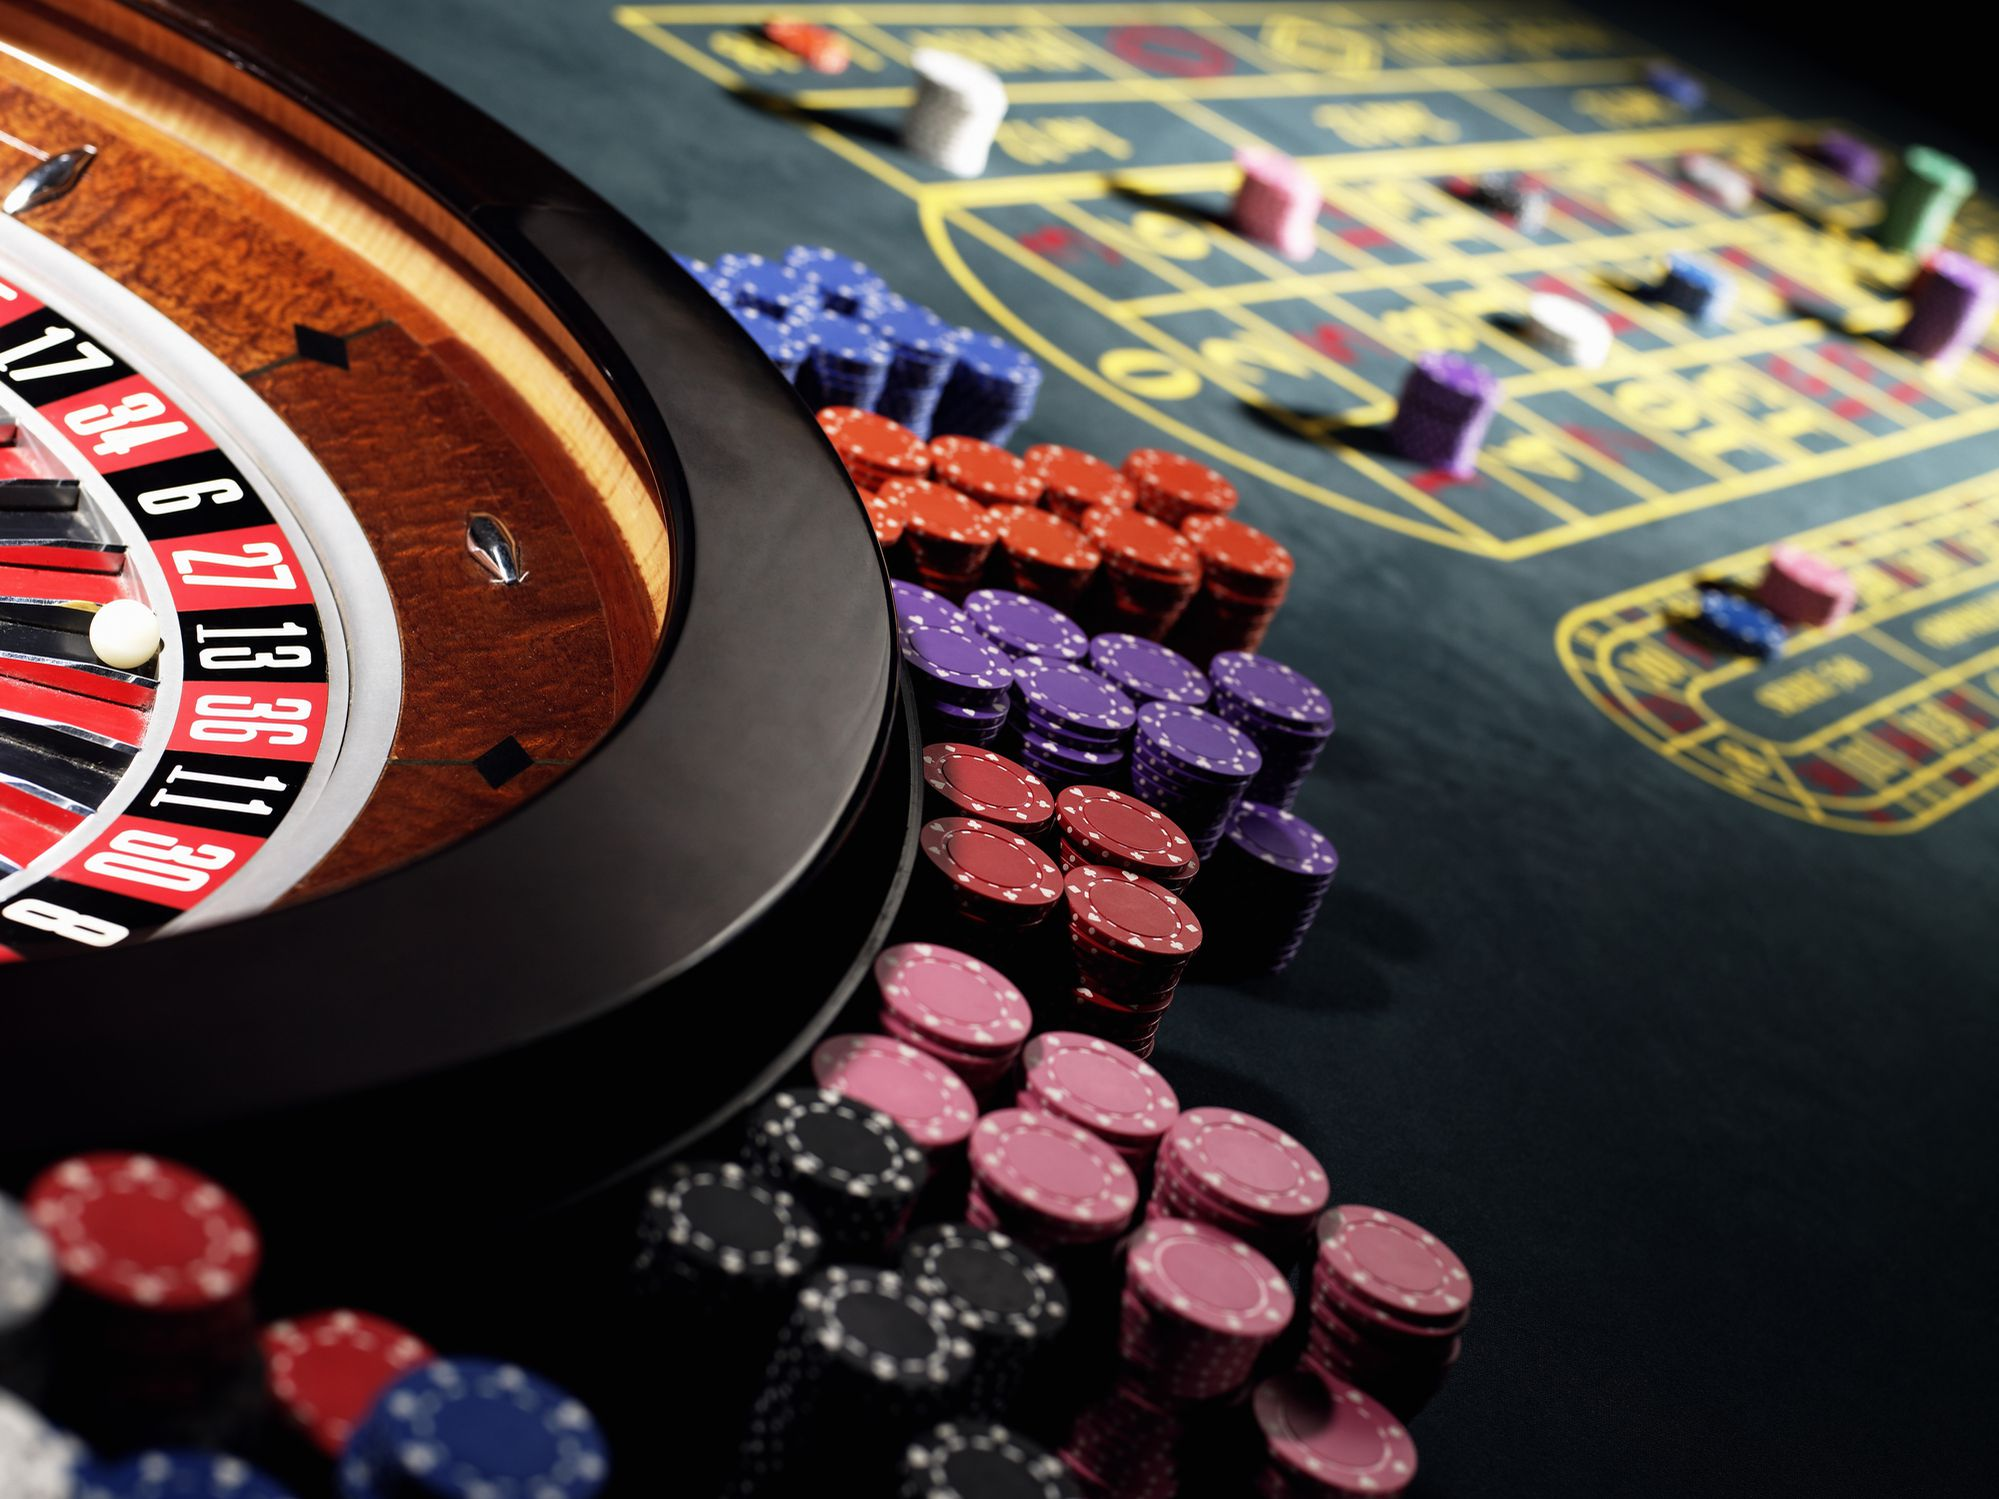 Fears of a professional Gambling